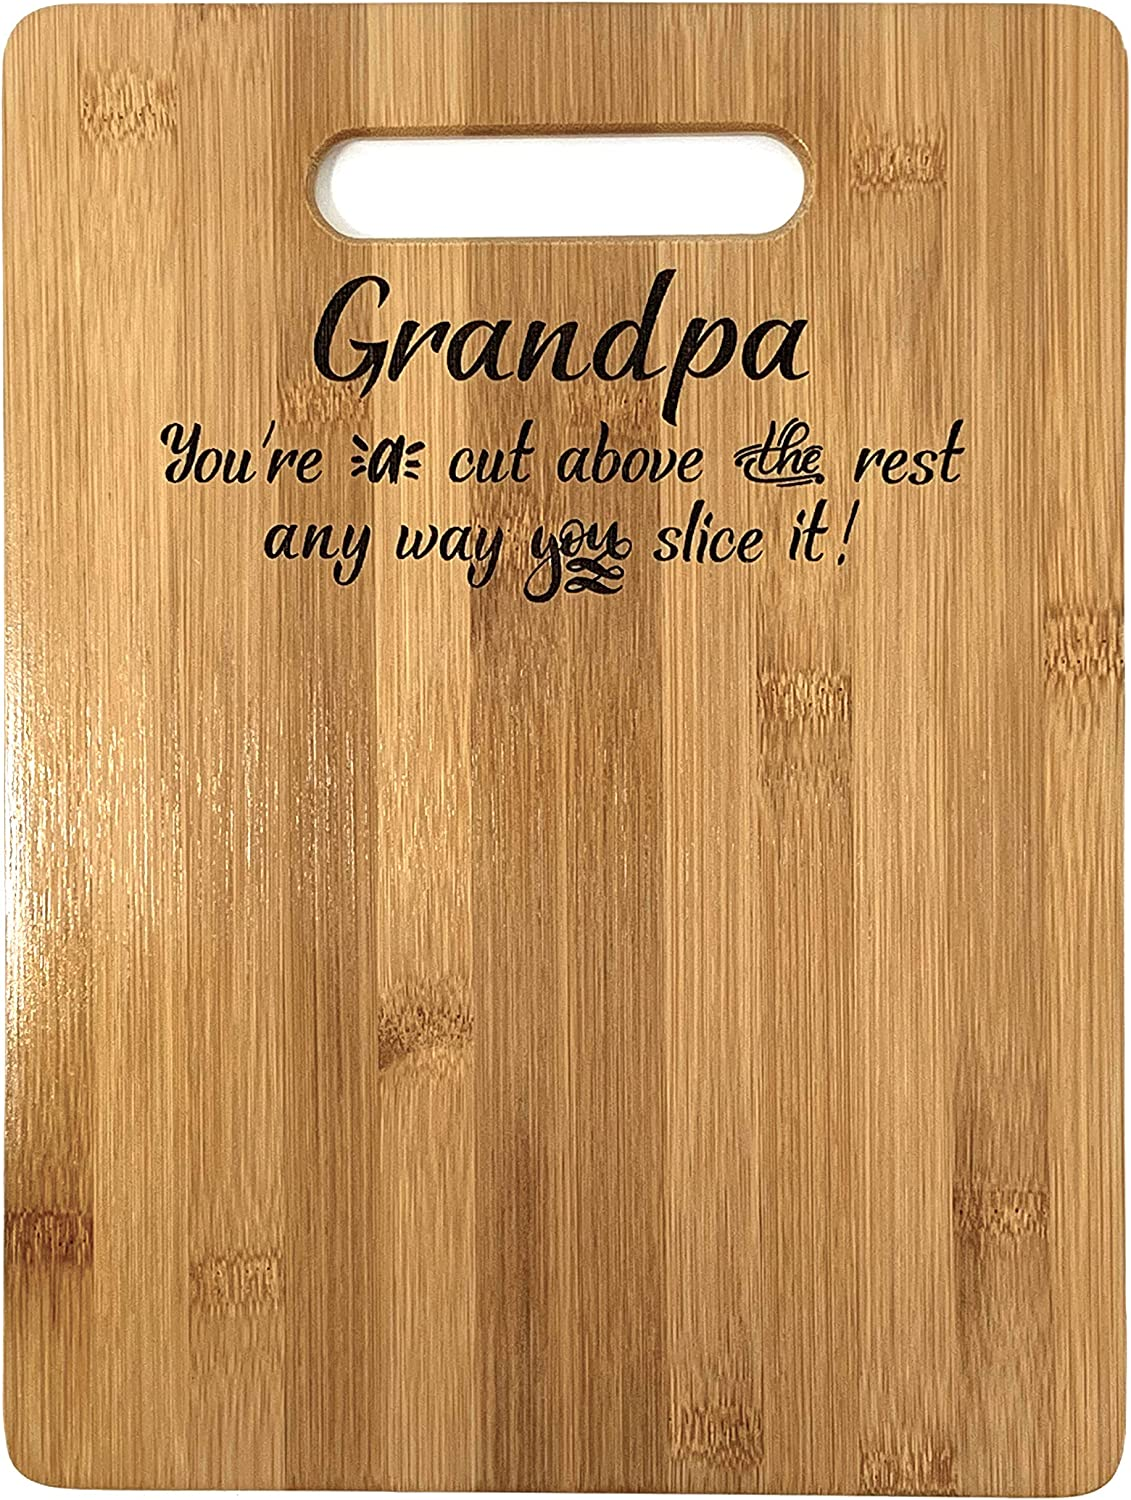 Grandpa Gift – Bamboo Cutting Board Design Grandpa Gift Grandpas Day Gift Birthday Christmas Gift Engraved Side For Décor Hanging Reverse Side For Usage (8.75x11.5 Rectangle)